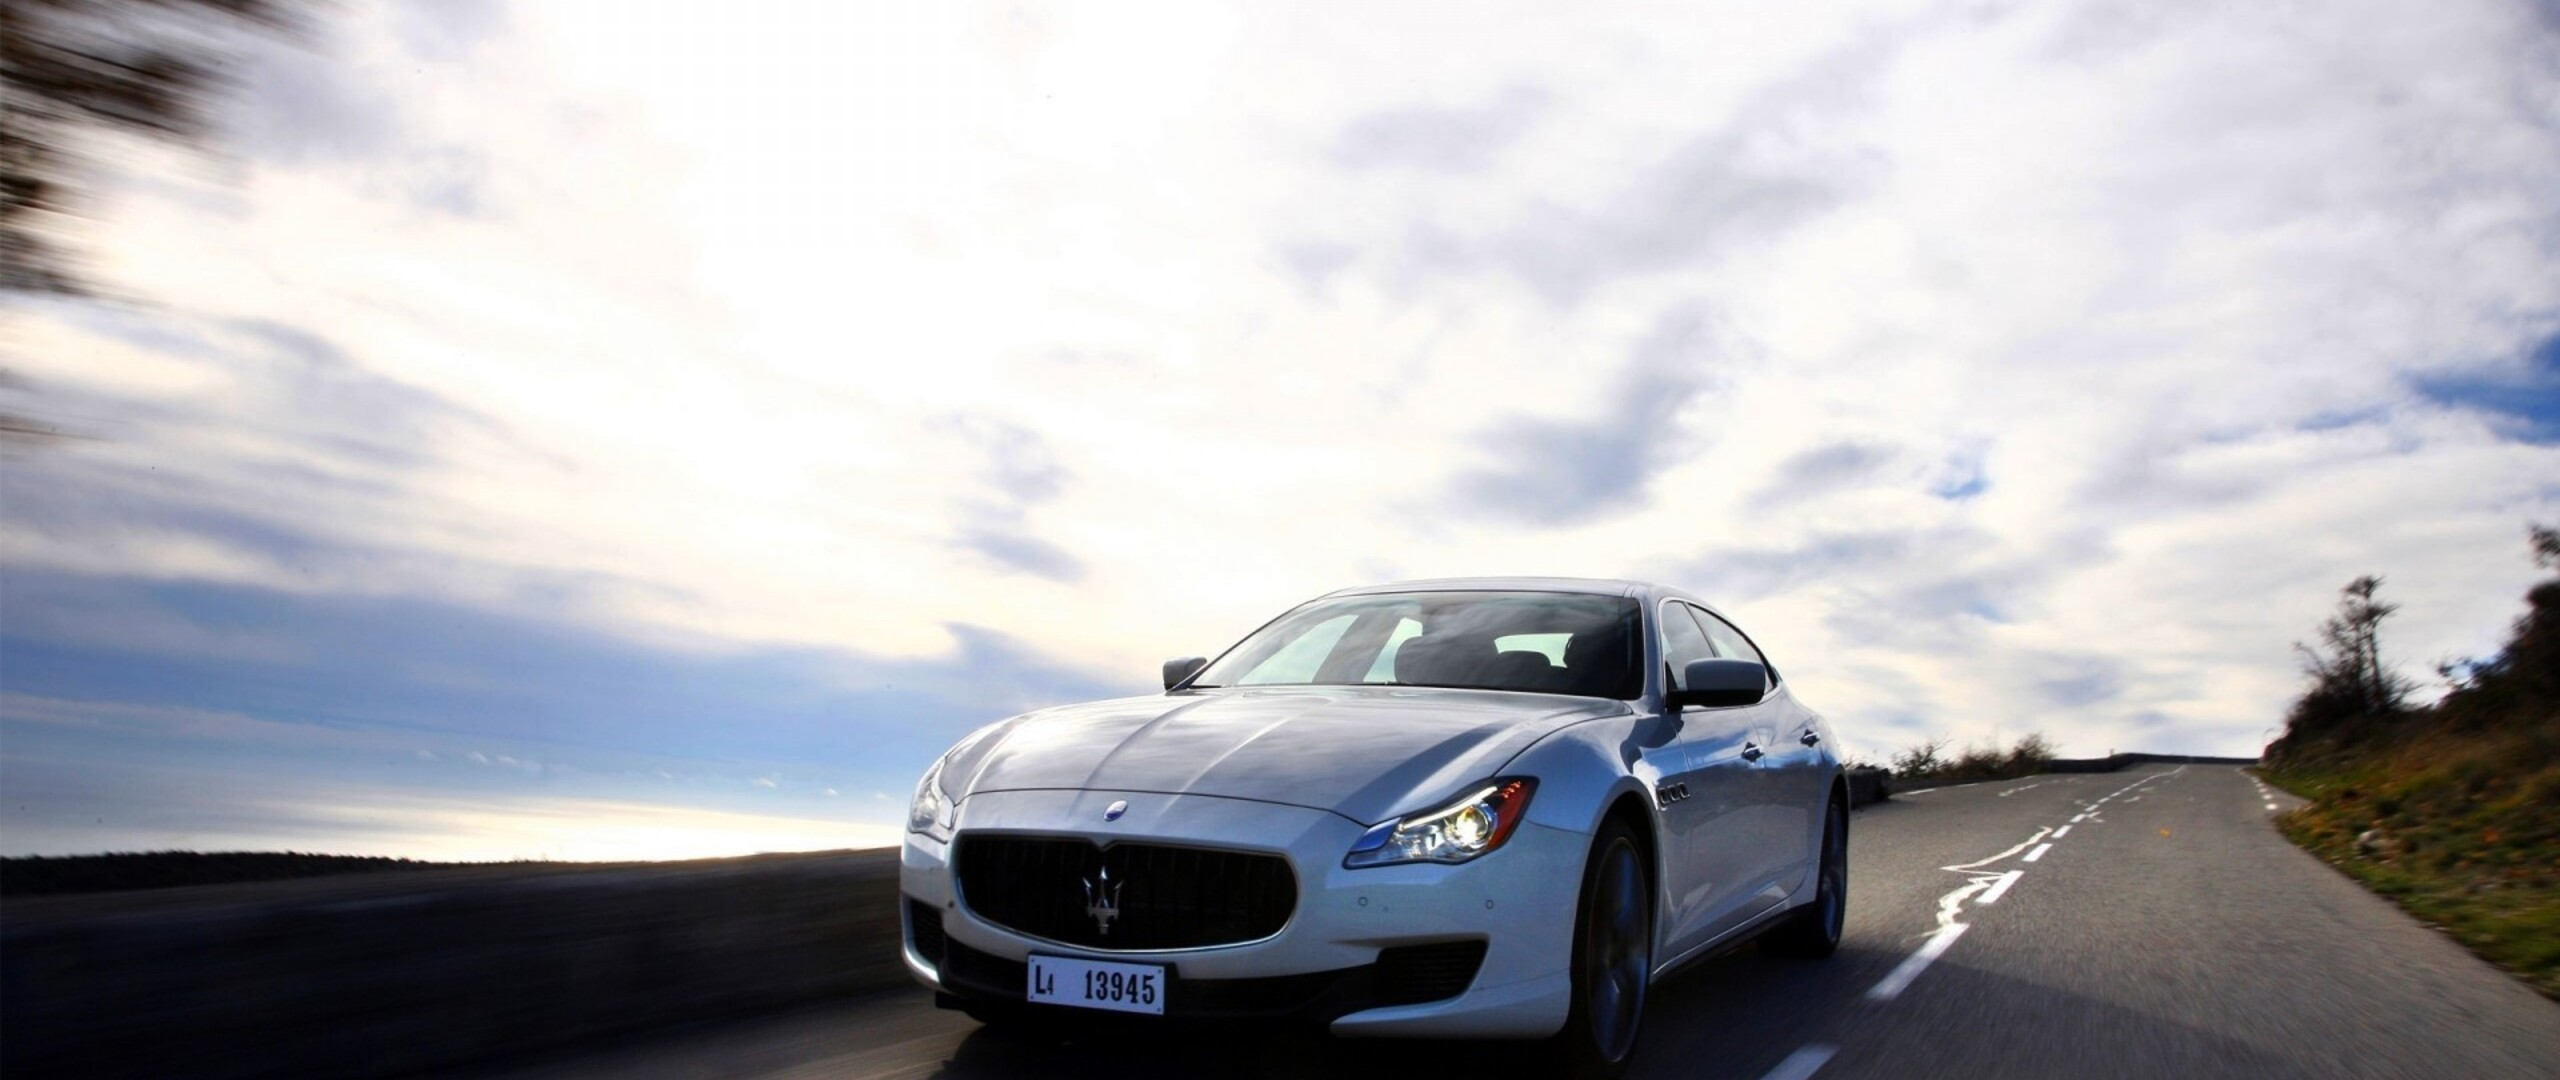 maserati-on-road-qhd.jpg